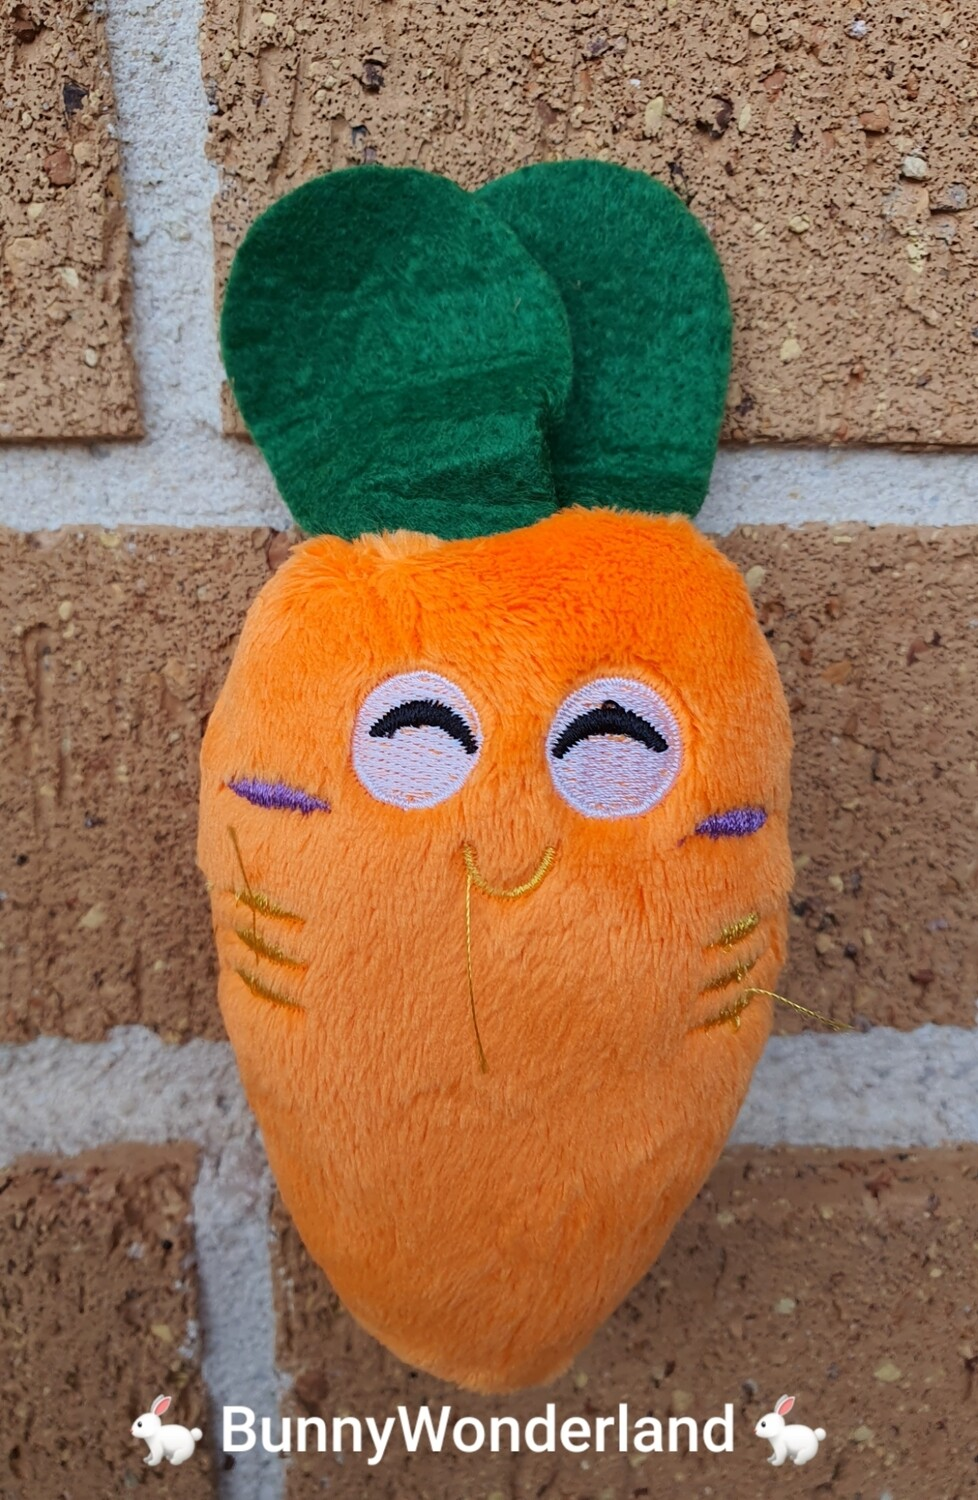 Squeaky Plush Carrot Toy